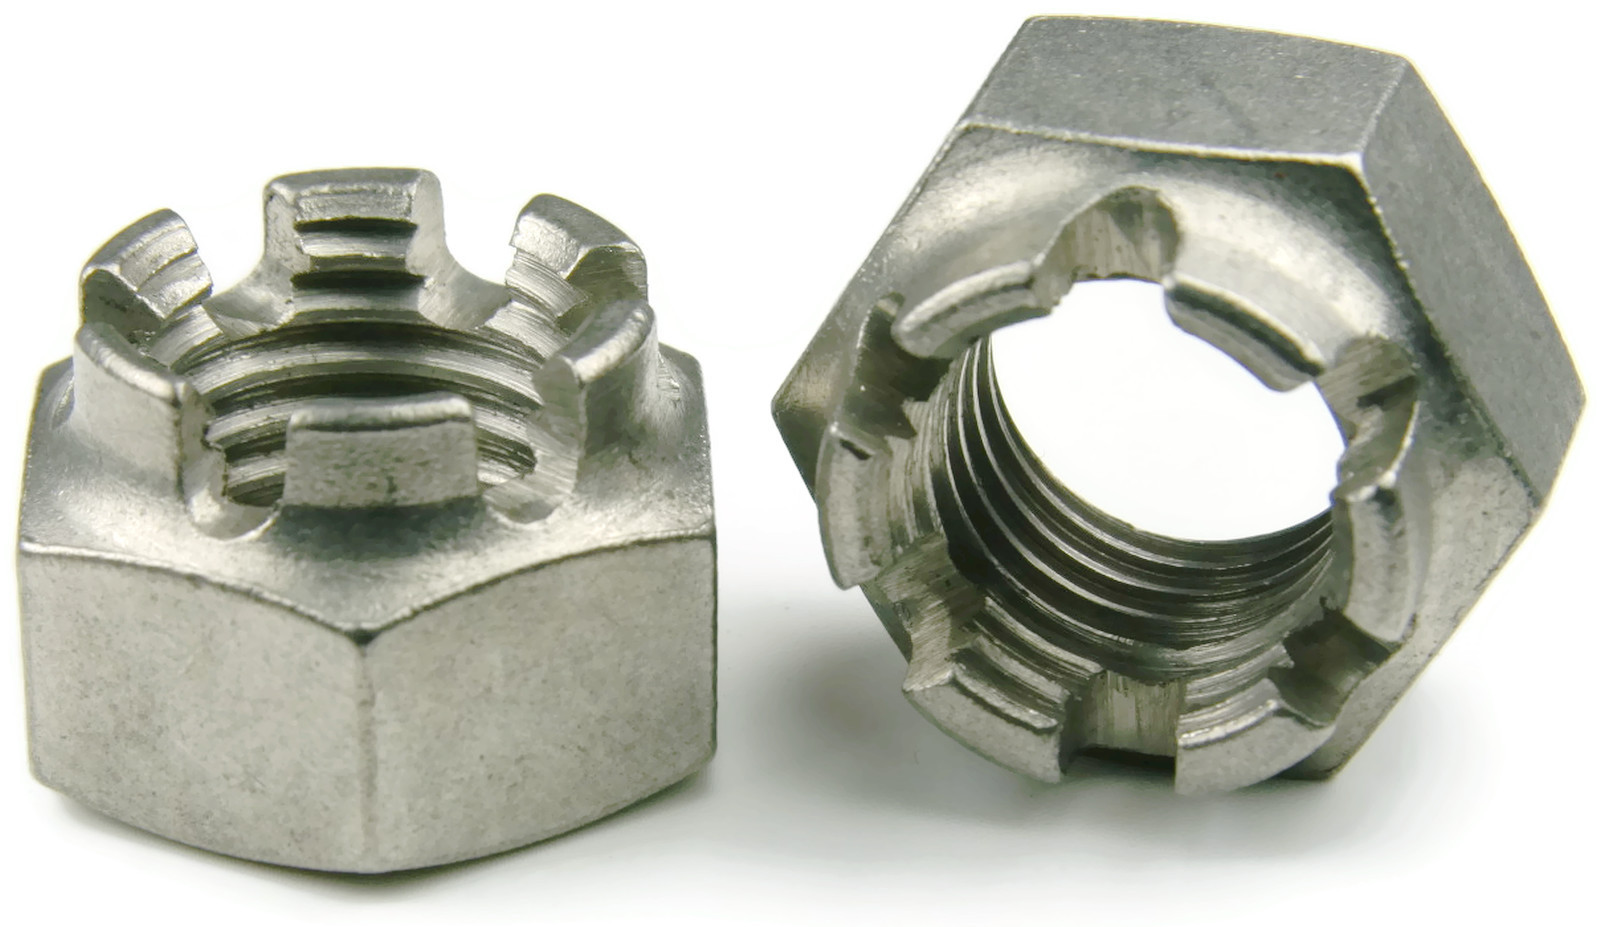 Stainless Steel Cotter Pin Castle Nut 5 8 18 Unf Qty 1 Ebay